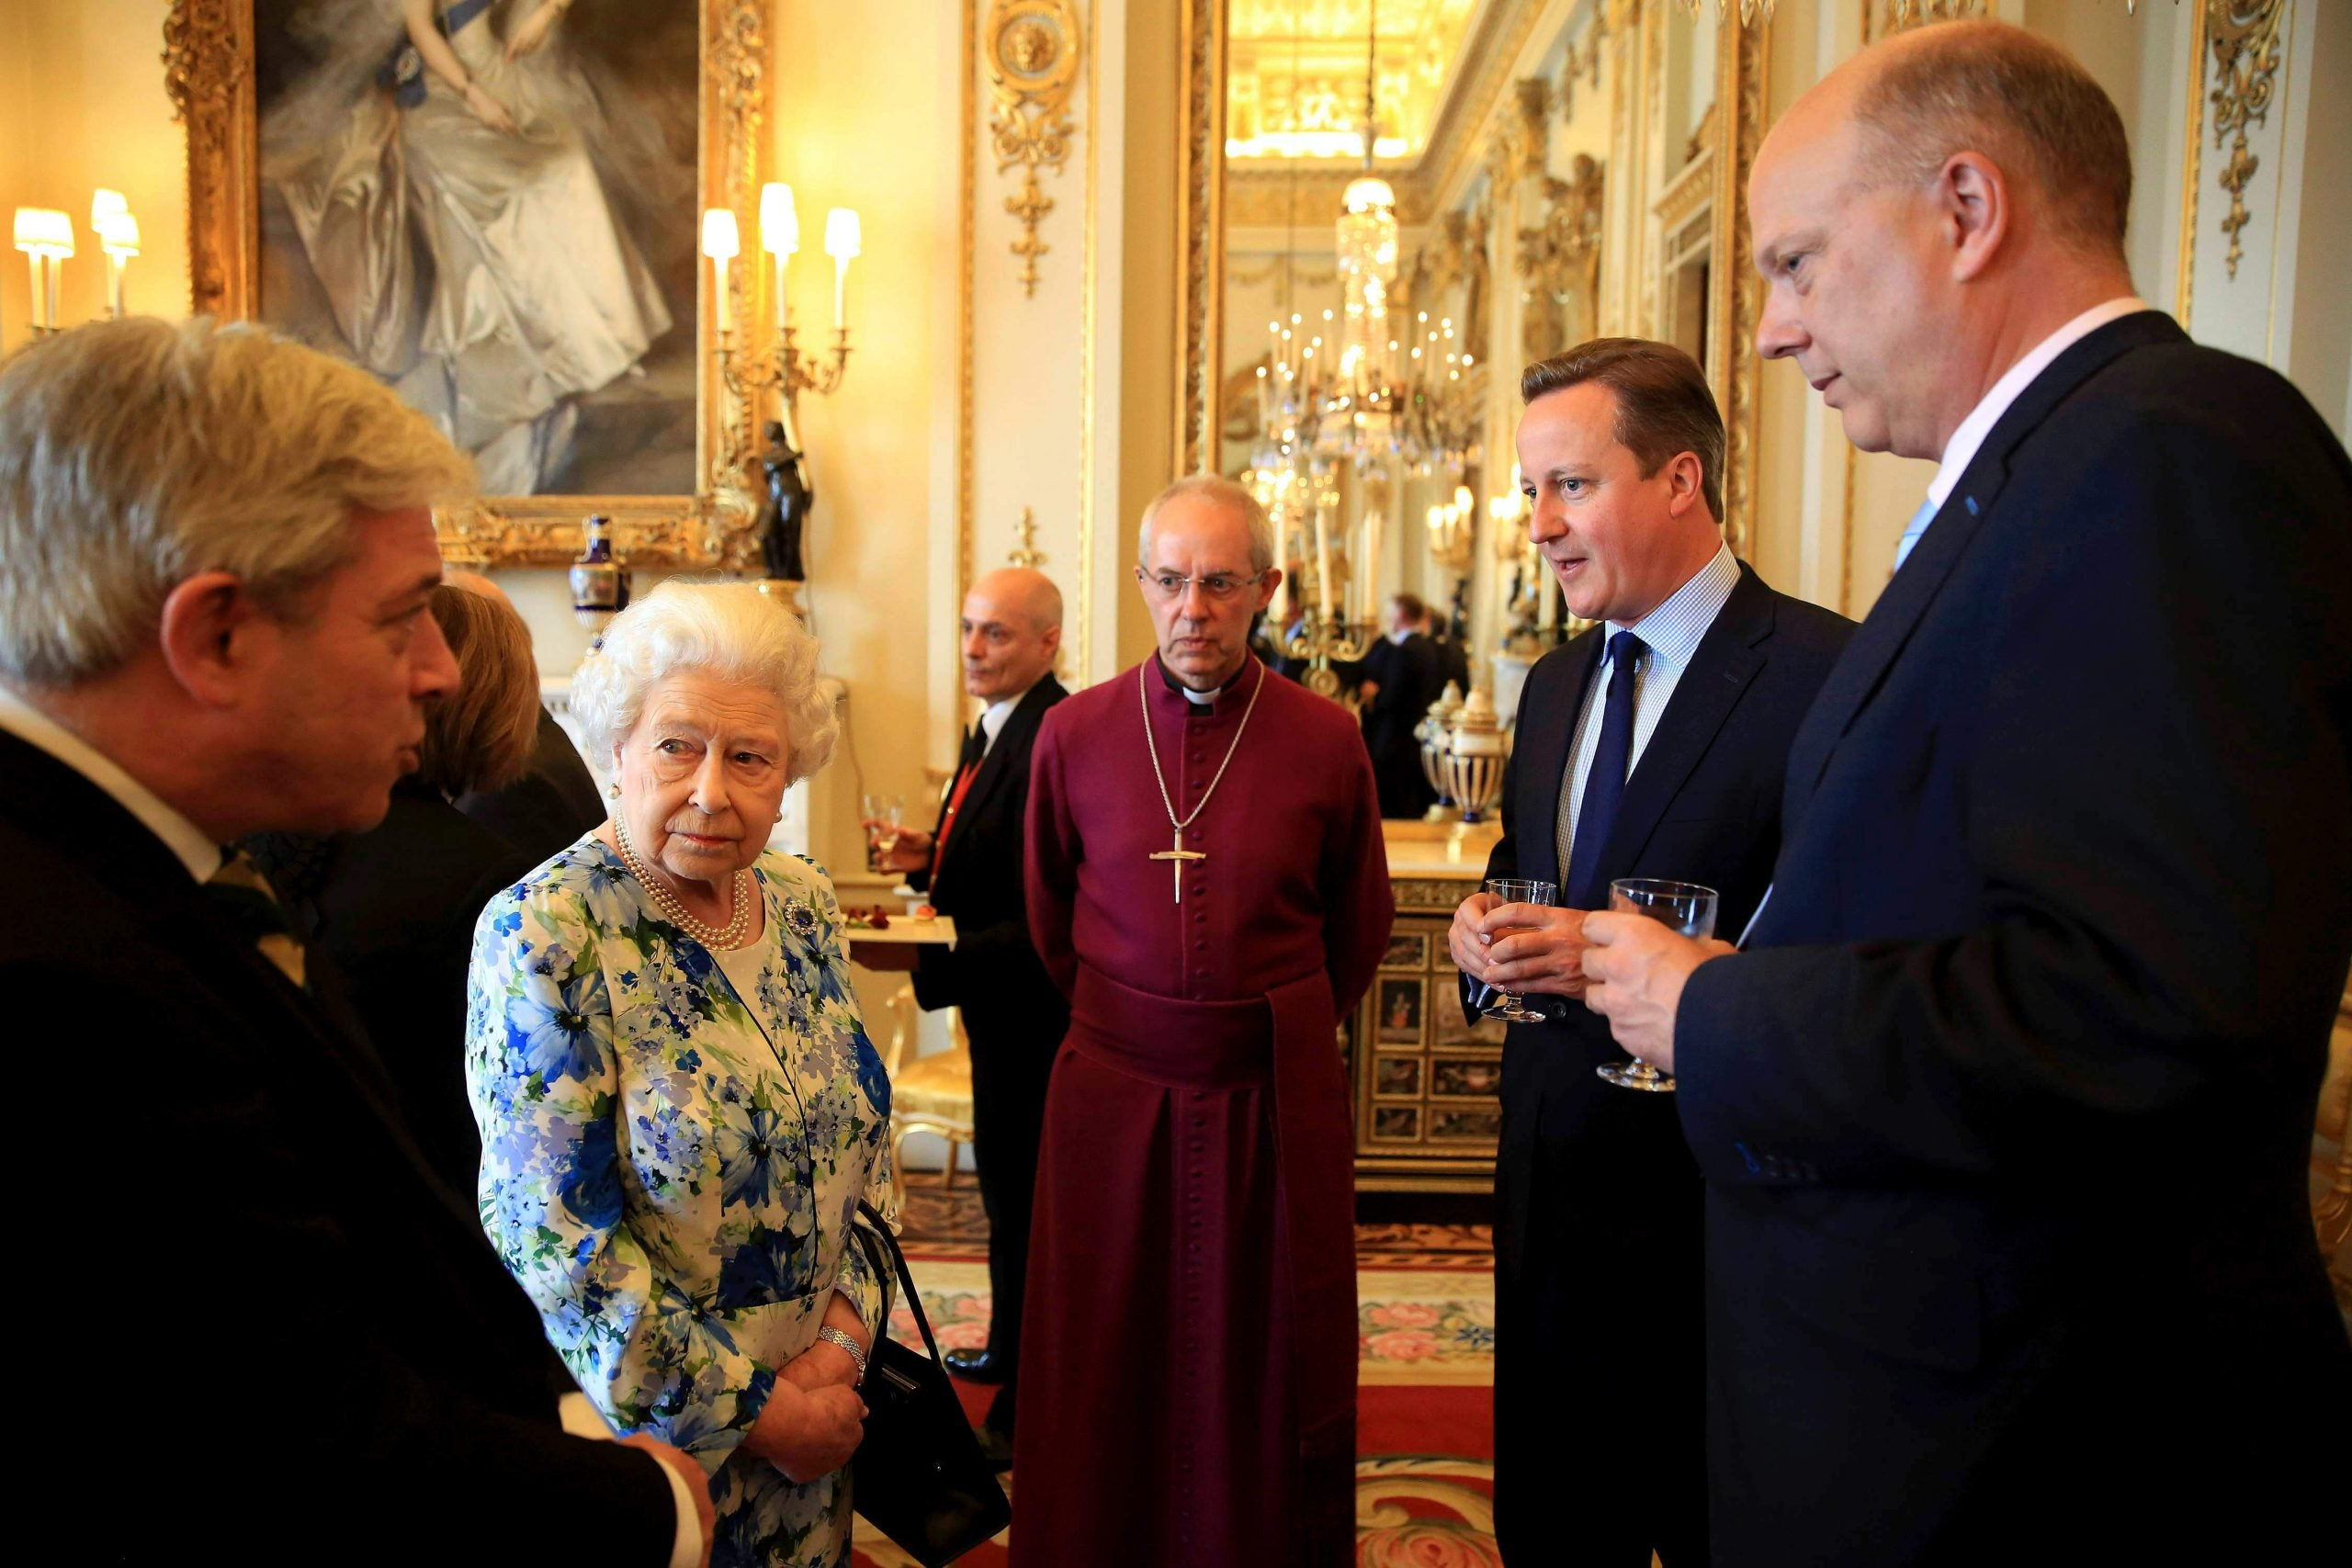 David Cameron has grand anti-corruption aims – can he do justice to the rhetoric?